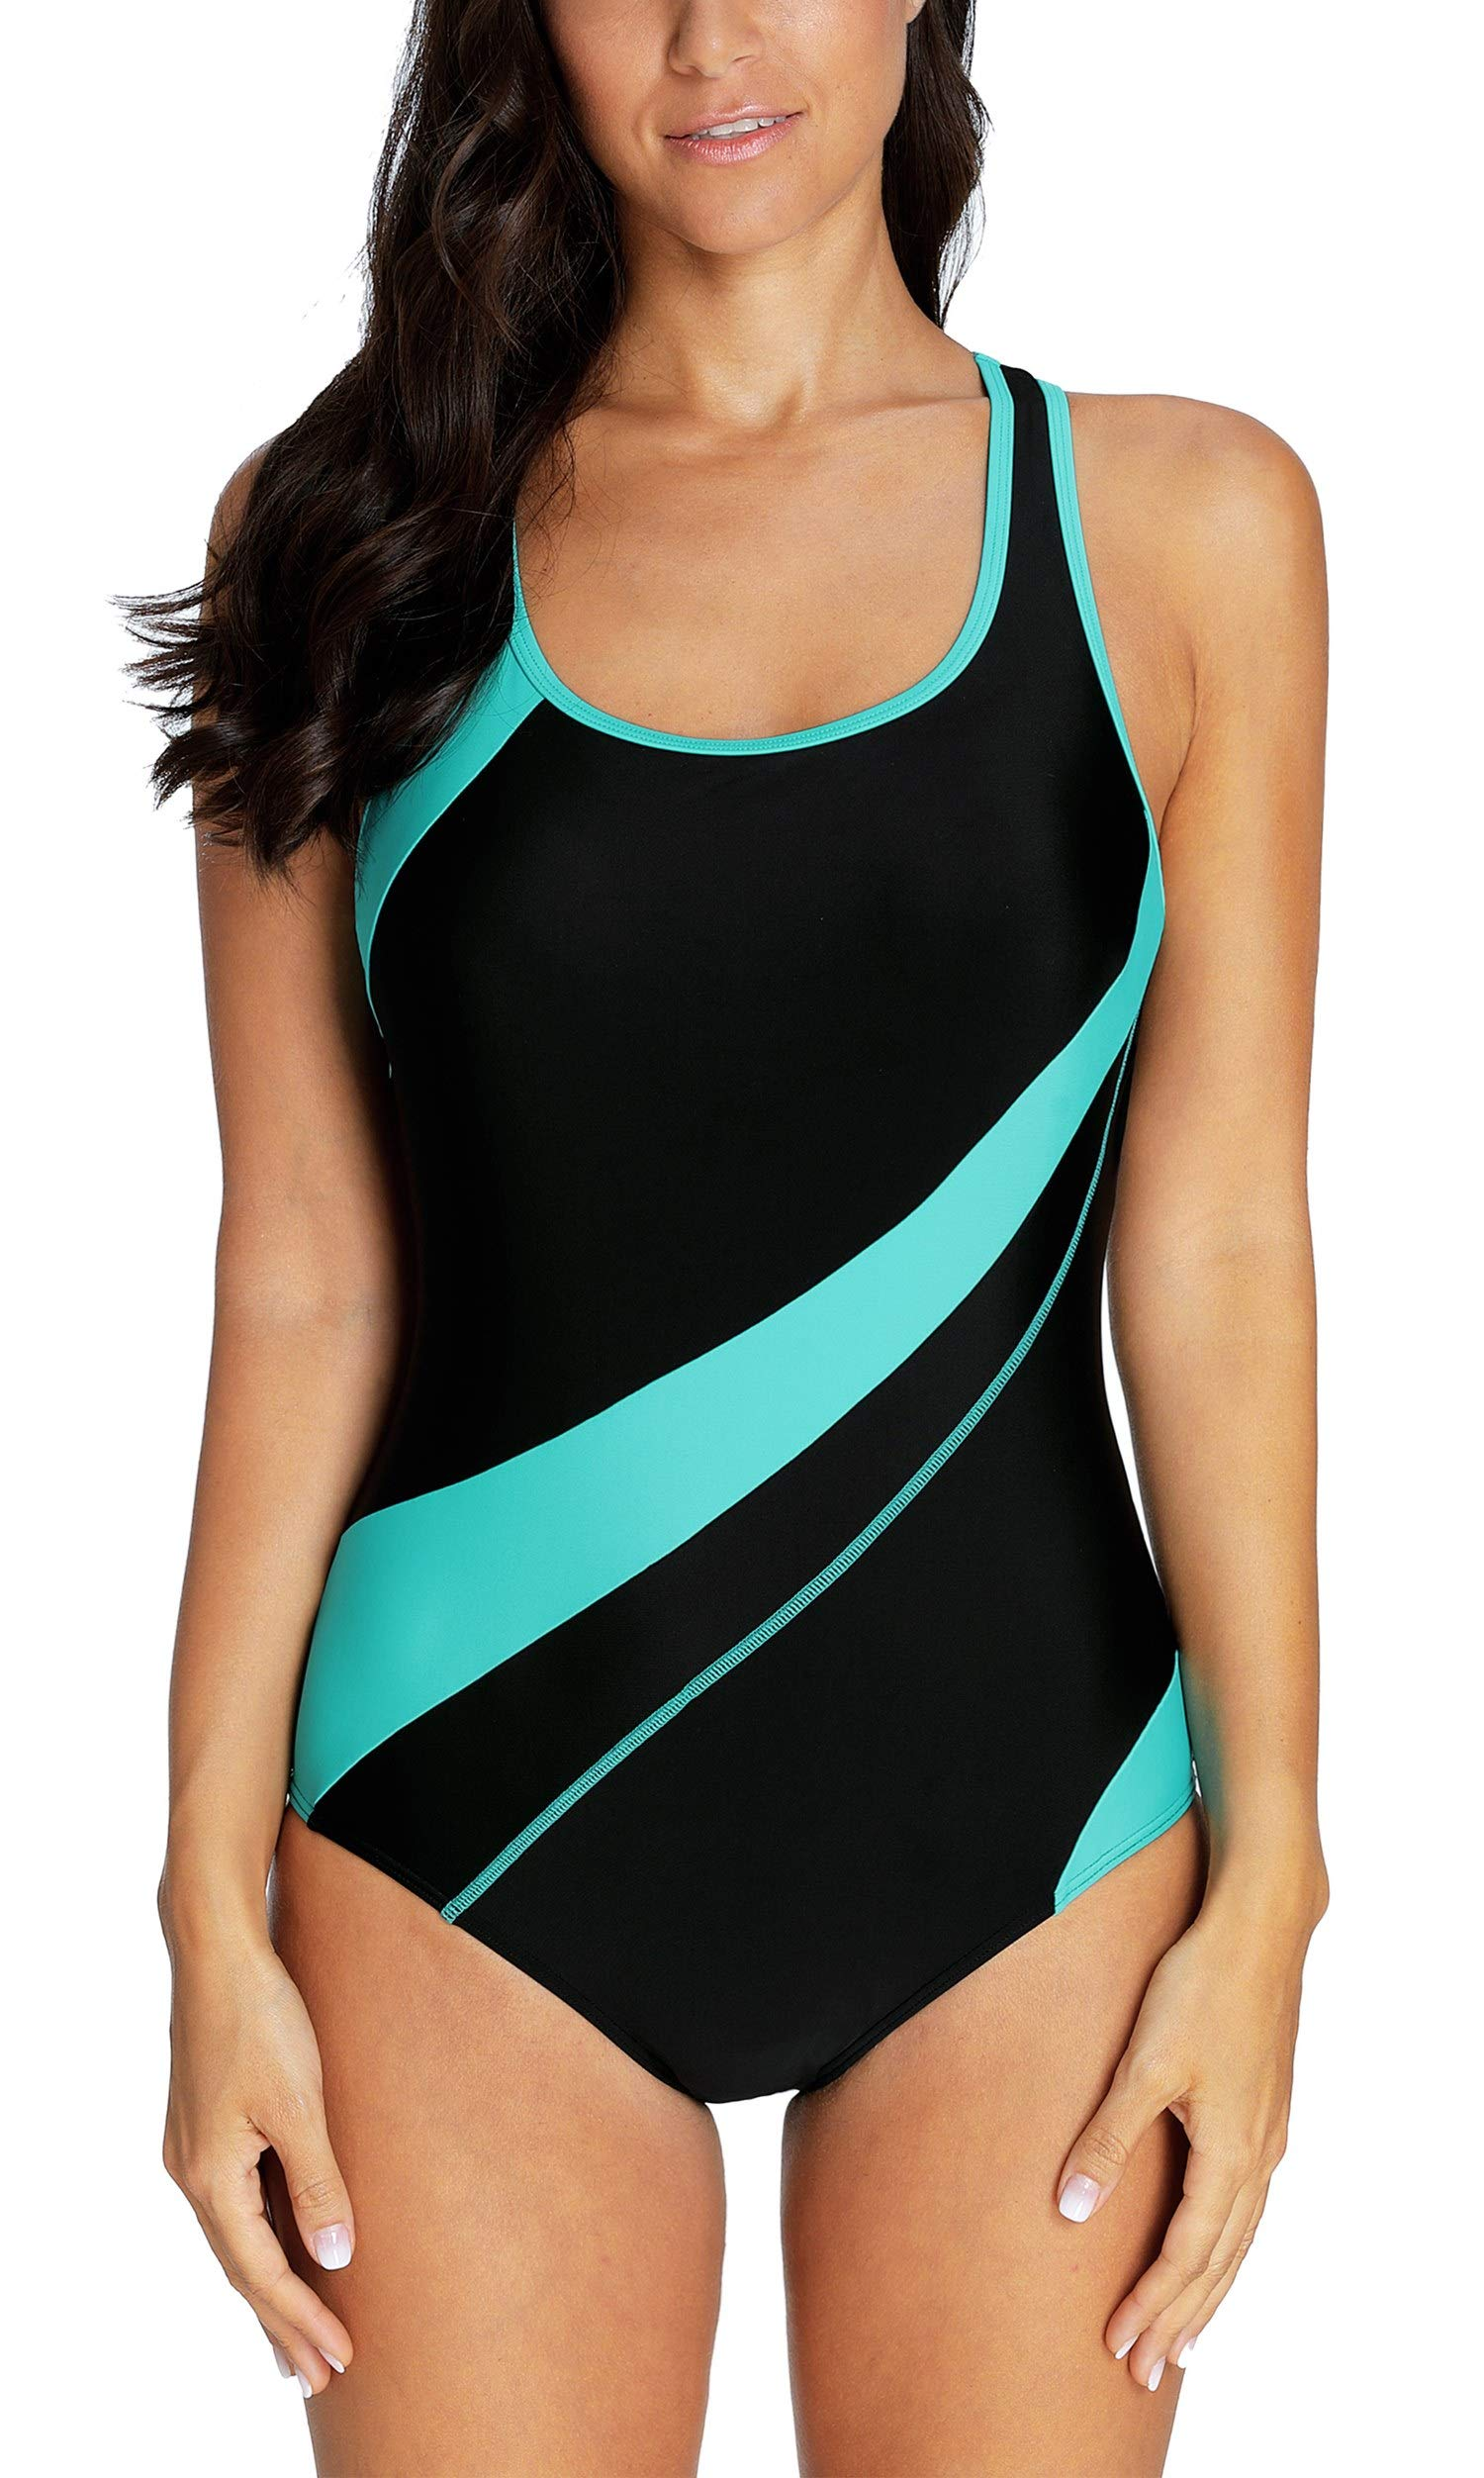 ATTRACO Sports Swimsuit for Women One Piece Athletic Bathing Suit Qqua L by ATTRACO